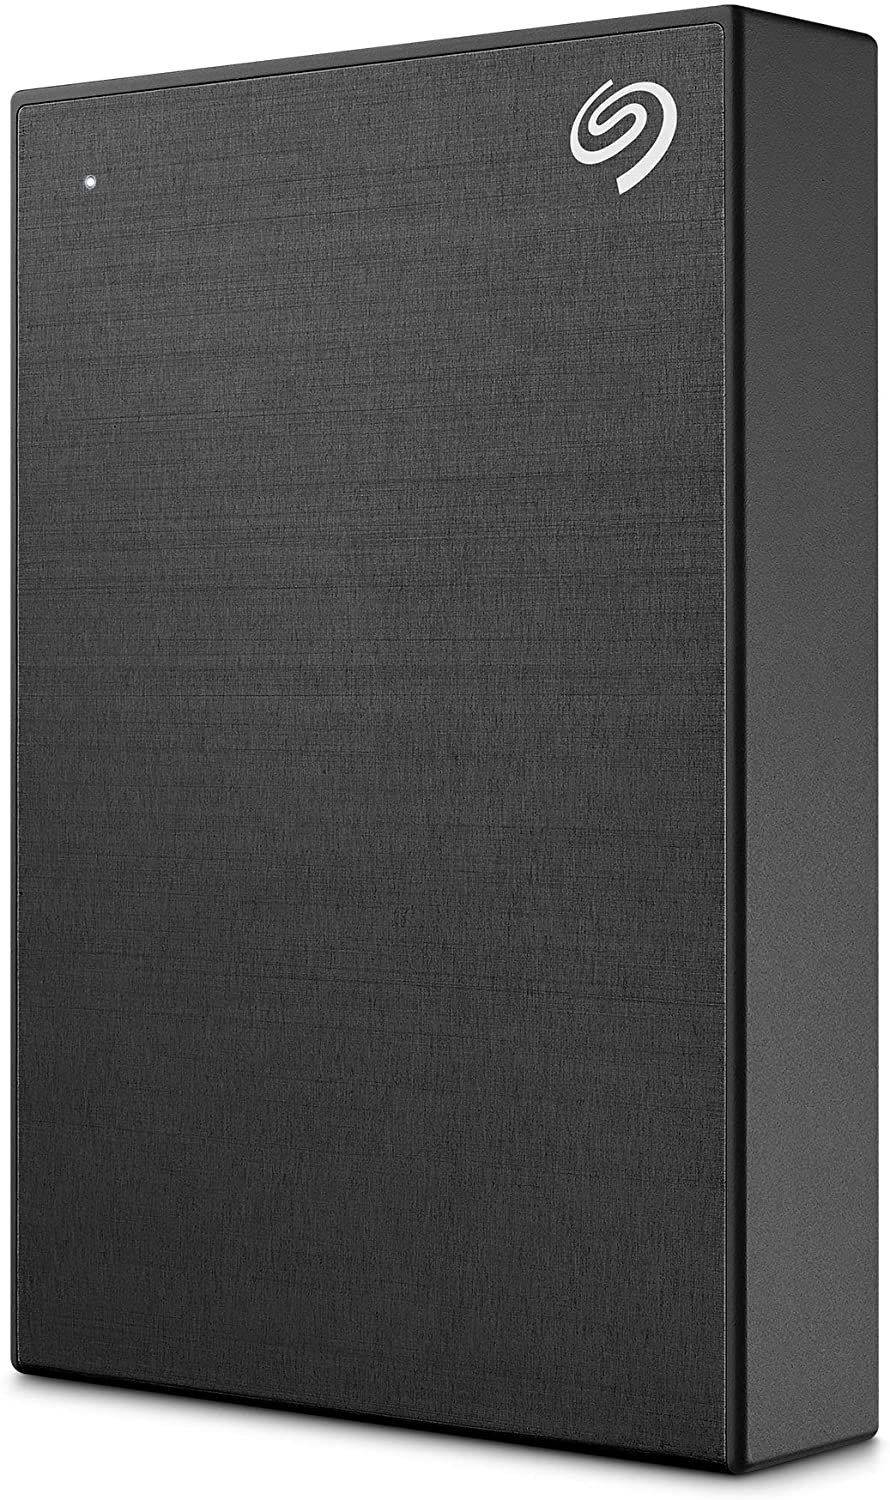 Seagate One Touch 5TB External Hard Drive HDD – Black USB 3.0 for PC Laptop and Mac, 1 Year MylioCreate, 4 Months Adobe Creative Cloud Photography Plan (STKC5000410)